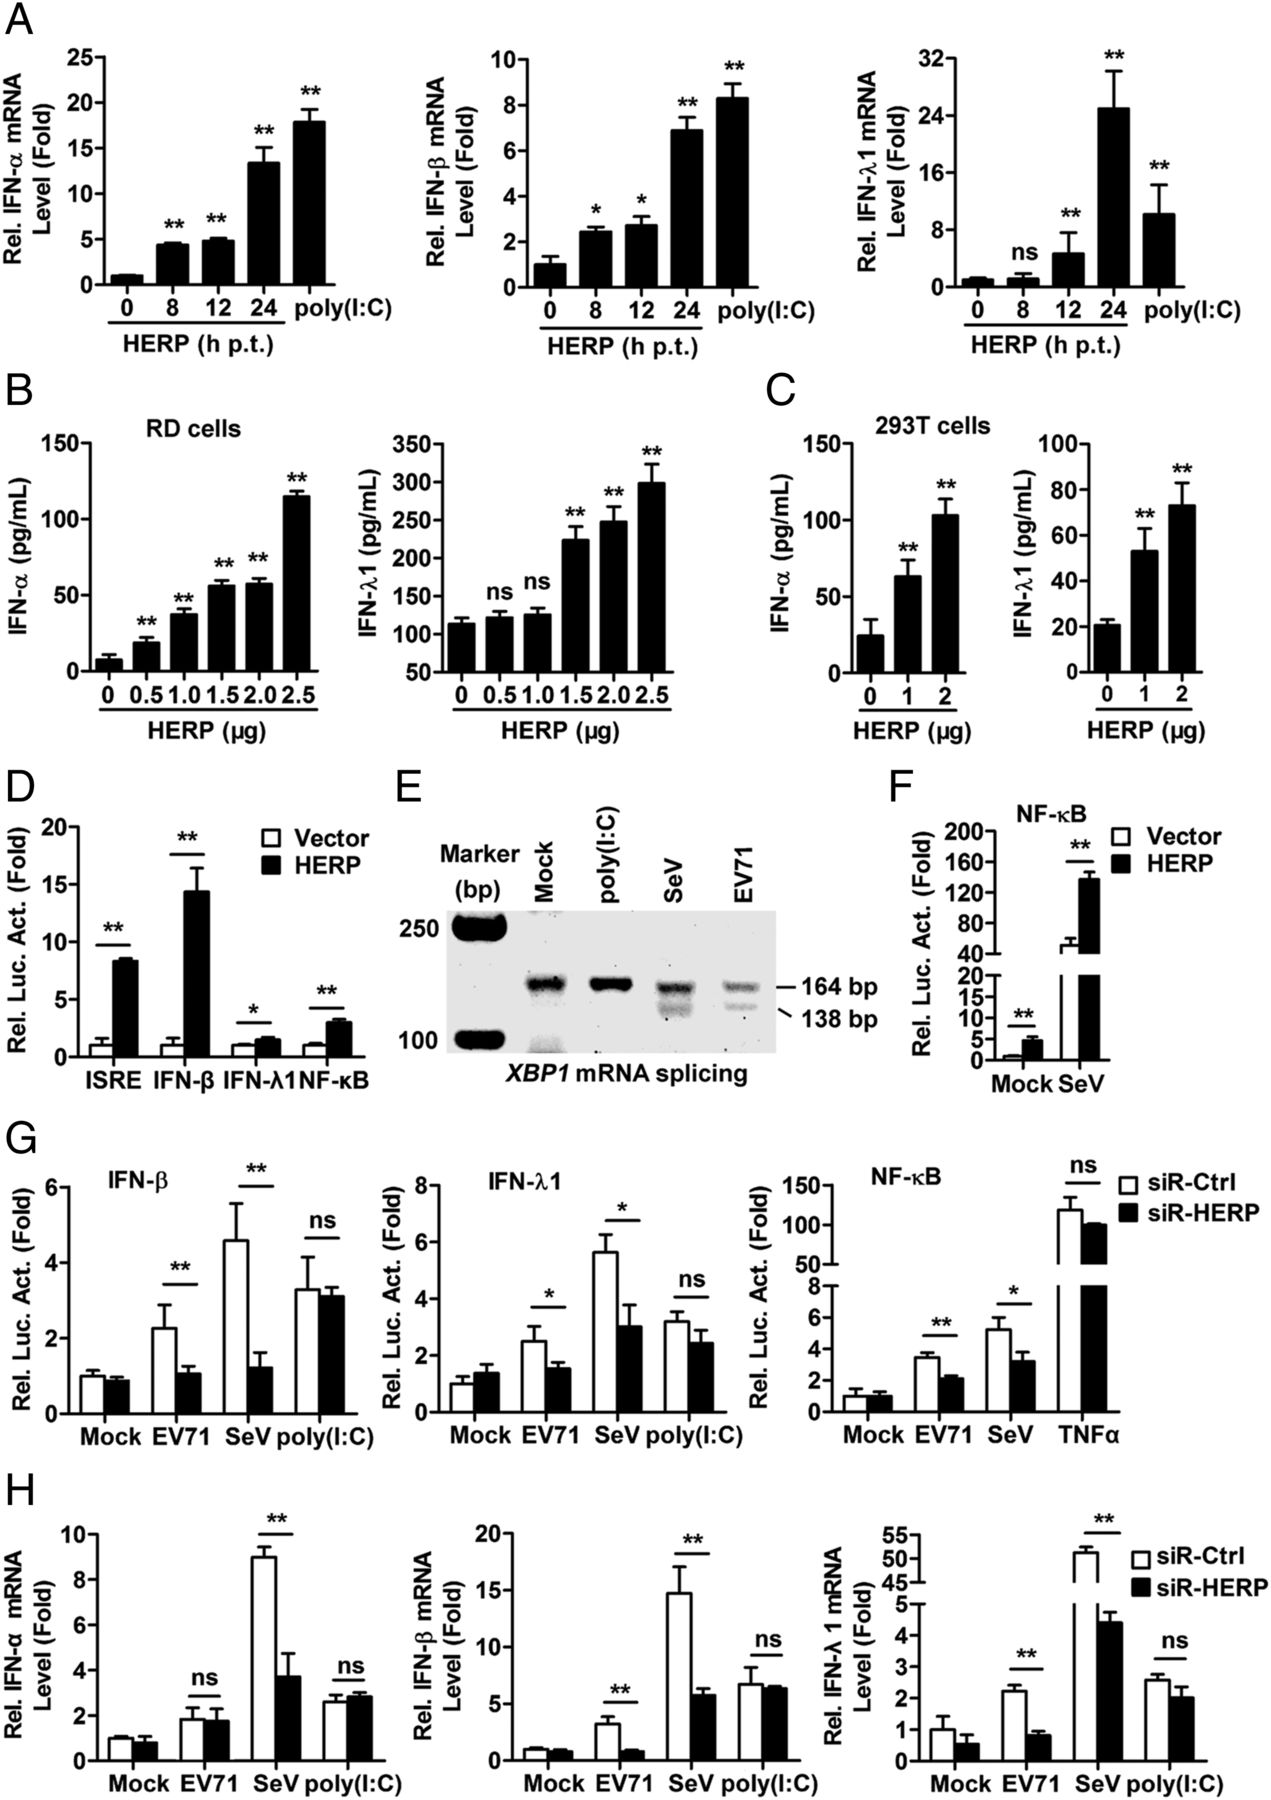 HERP Binds TBK1 To Activate Innate Immunity and Repress